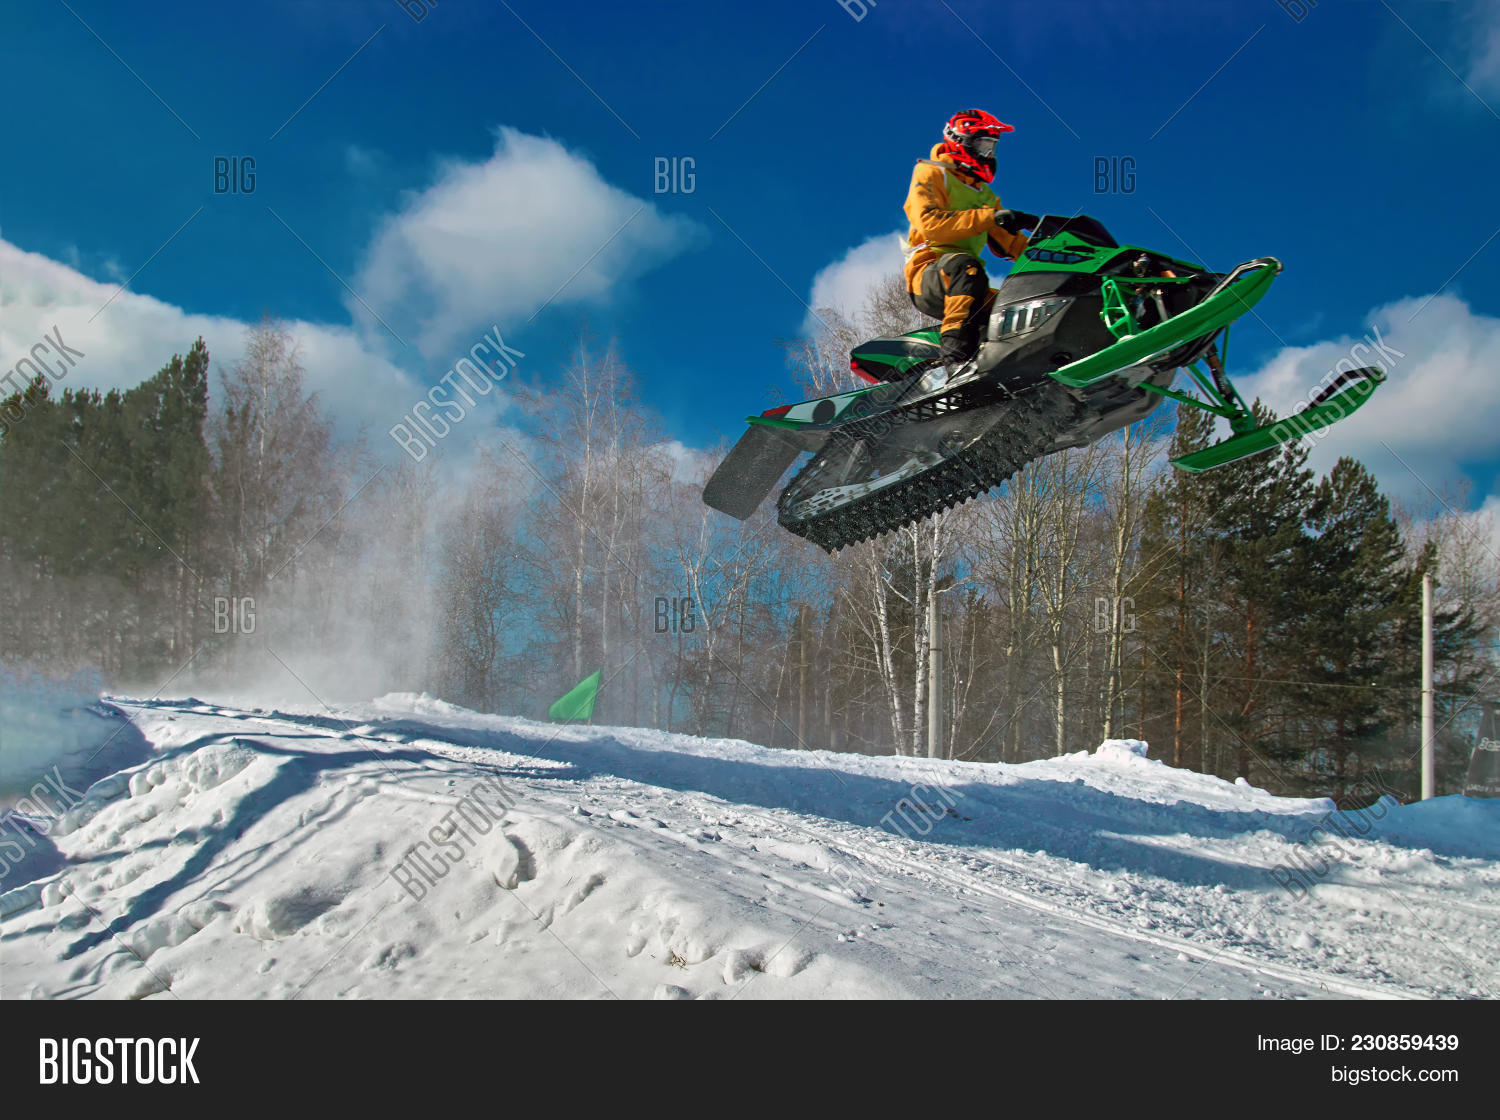 Big Green Sport Image & Photo (Free Trial) | Bigstock